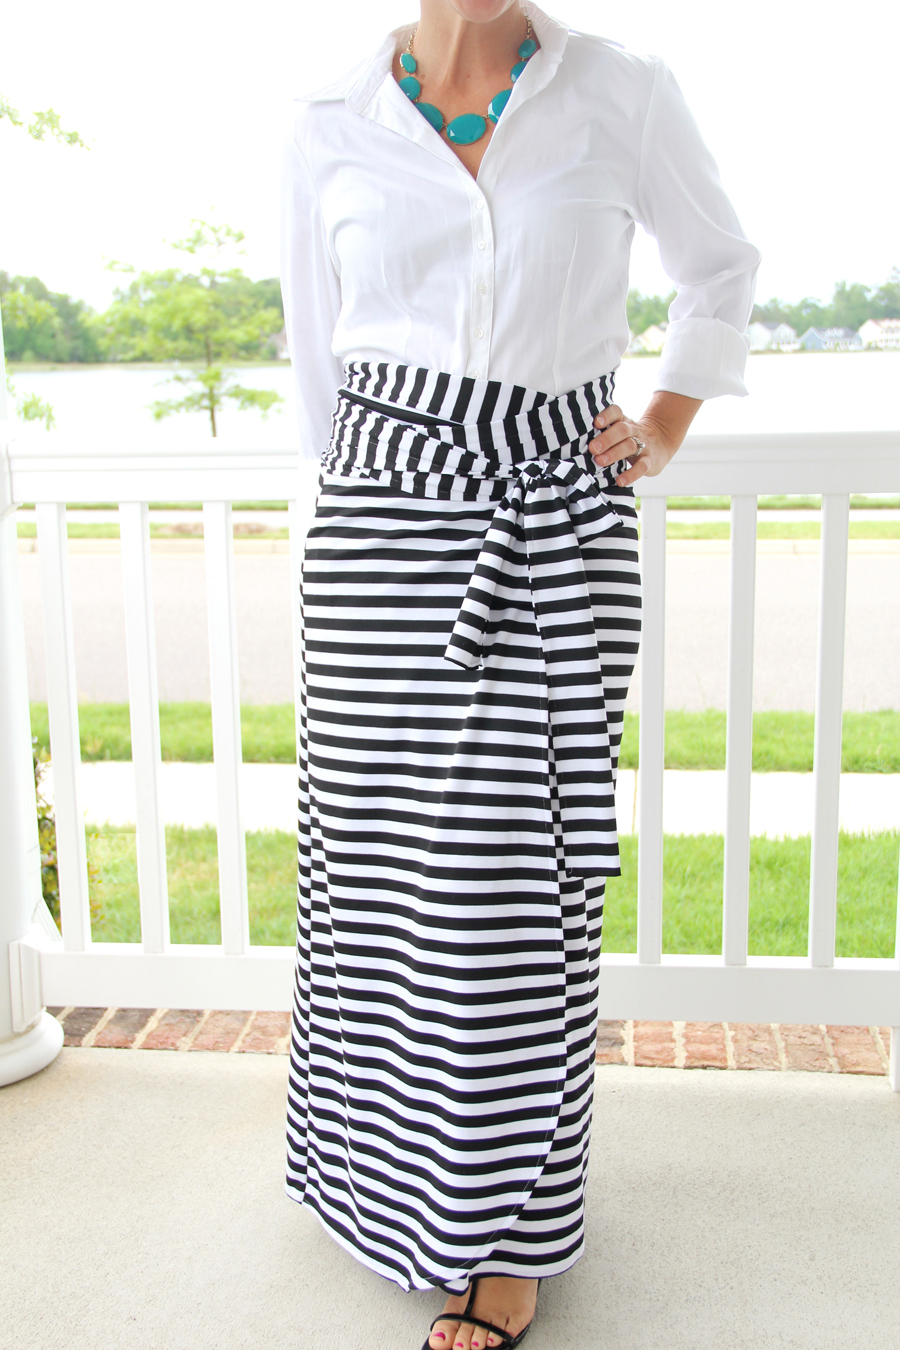 Wrap Maxi Skirt DIY from the Sewing Rabbit